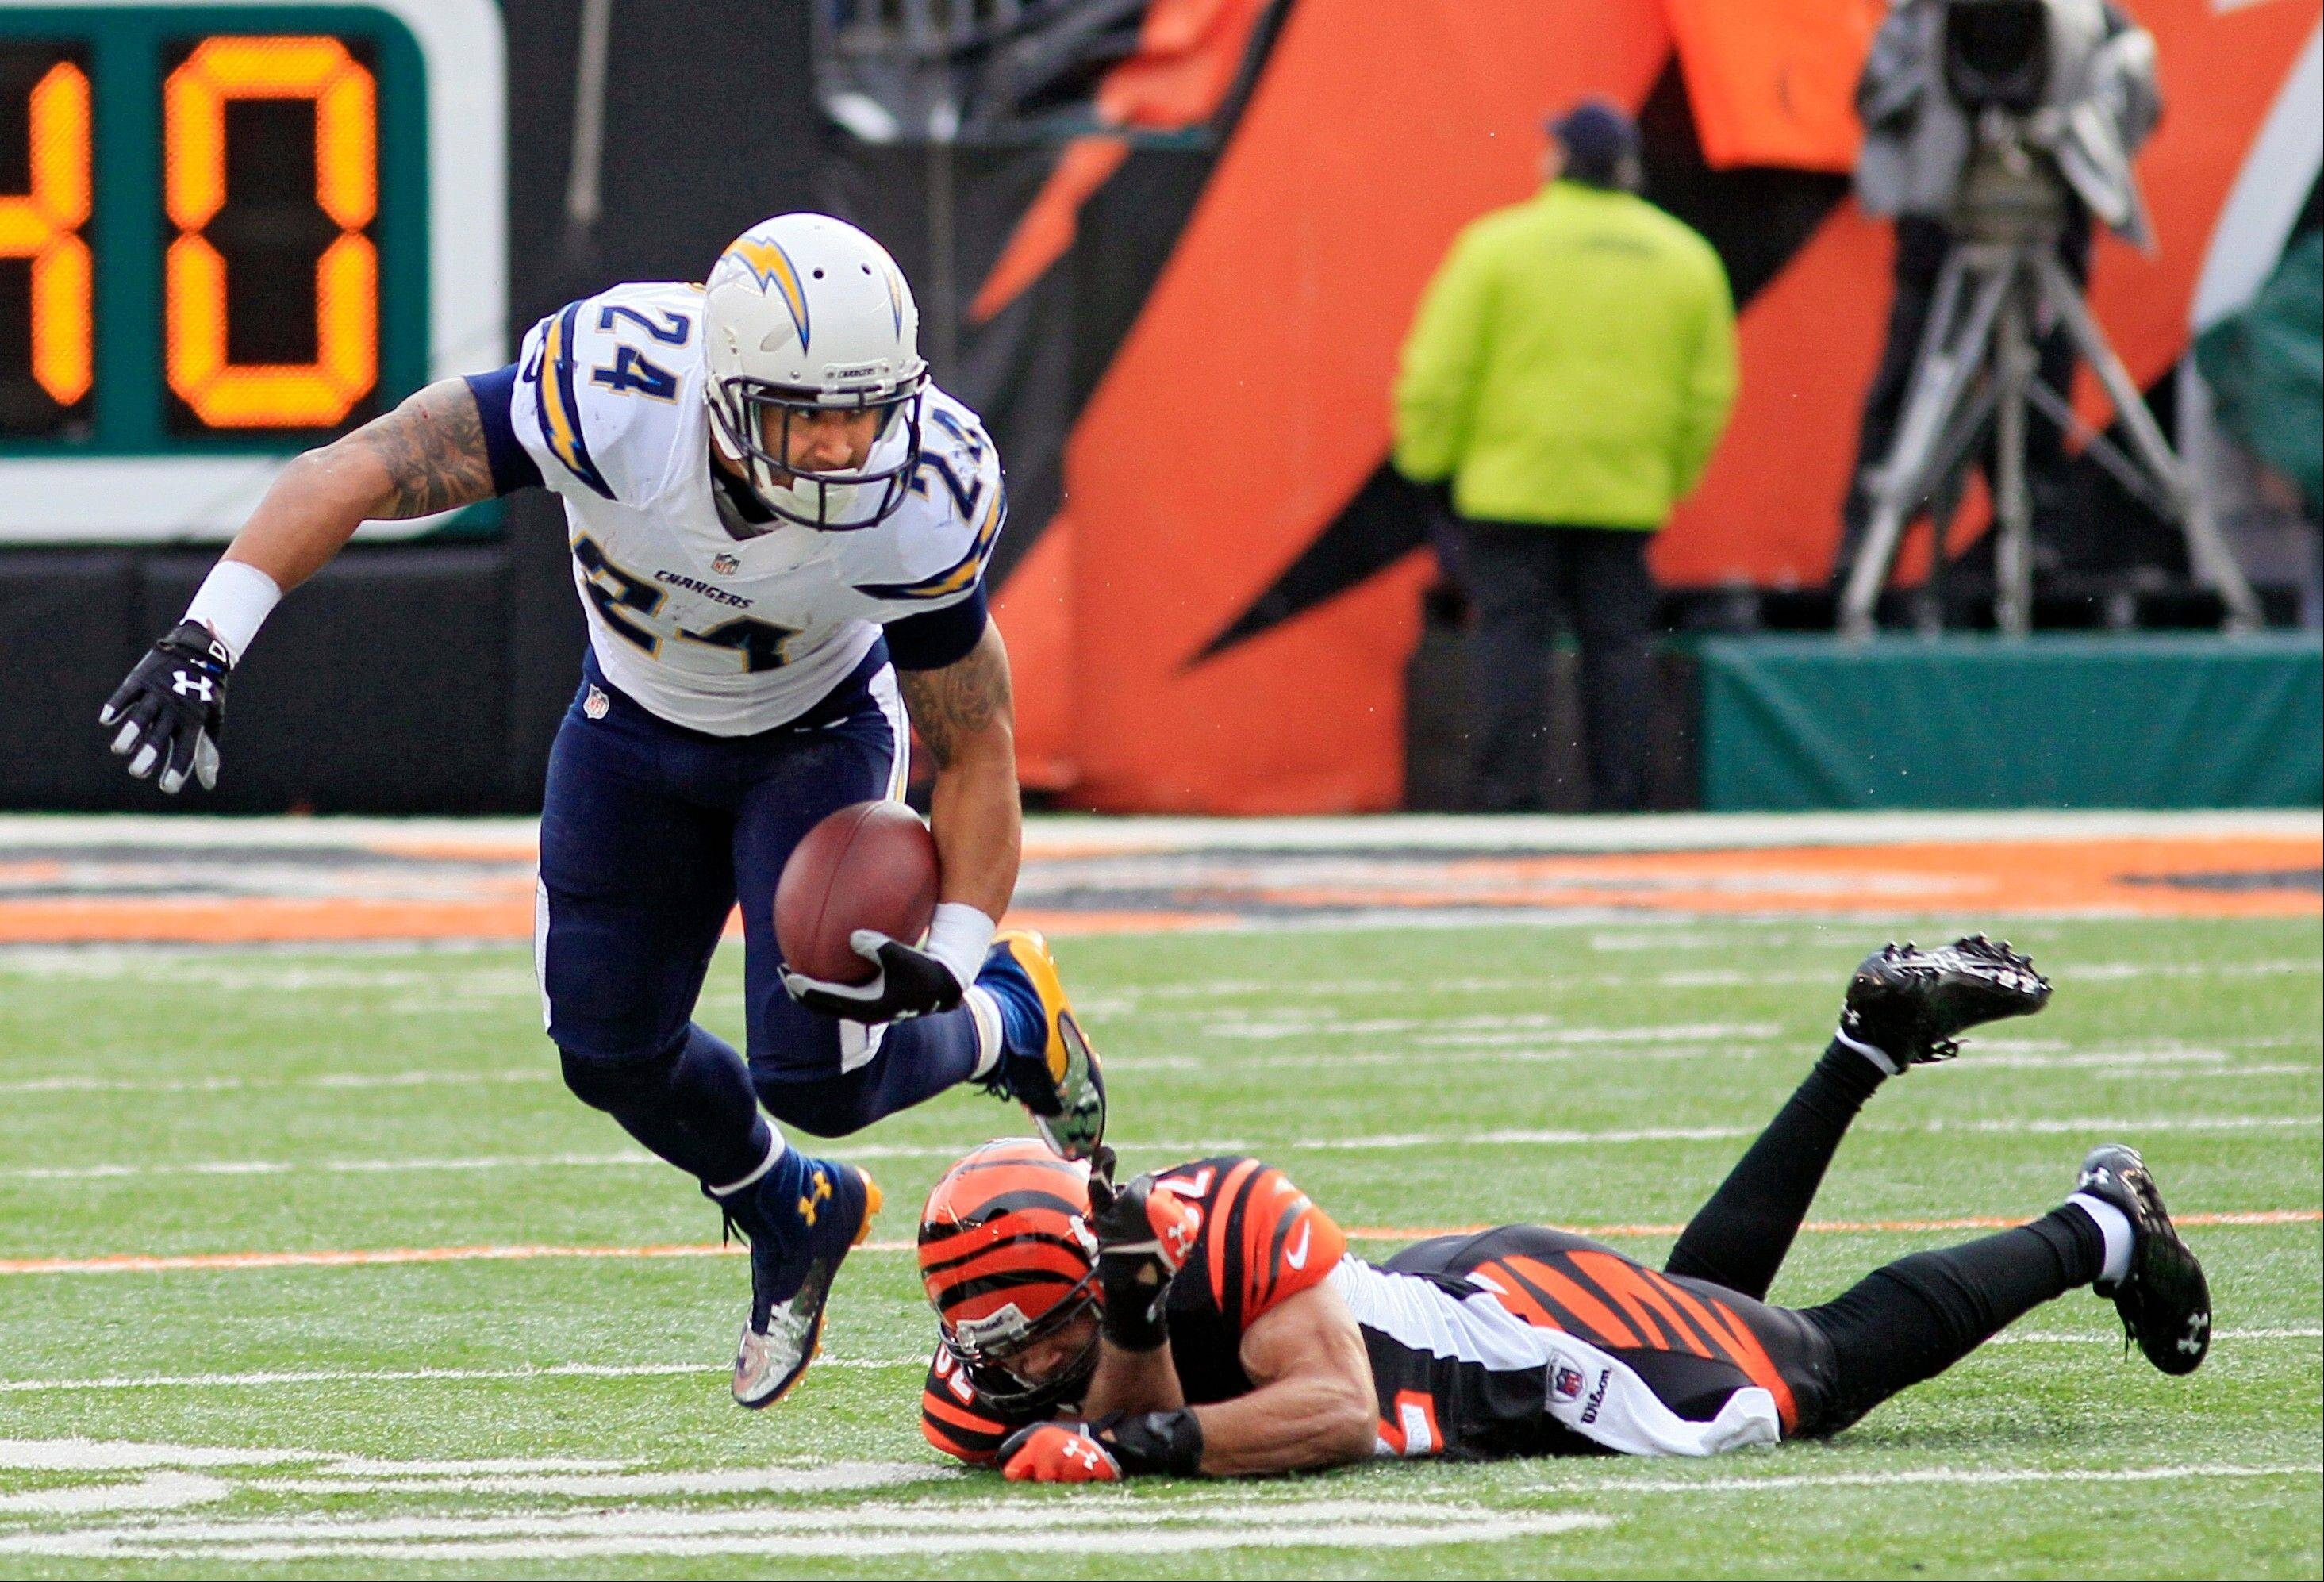 San Diego Chargers running back Ryan Mathews (24) avoids the tackle by Cincinnati Bengals safety Chris Crocker in the first half of an NFL wild-card playoff football game on Sunday, Jan. 5, 2014, in Cincinnati.